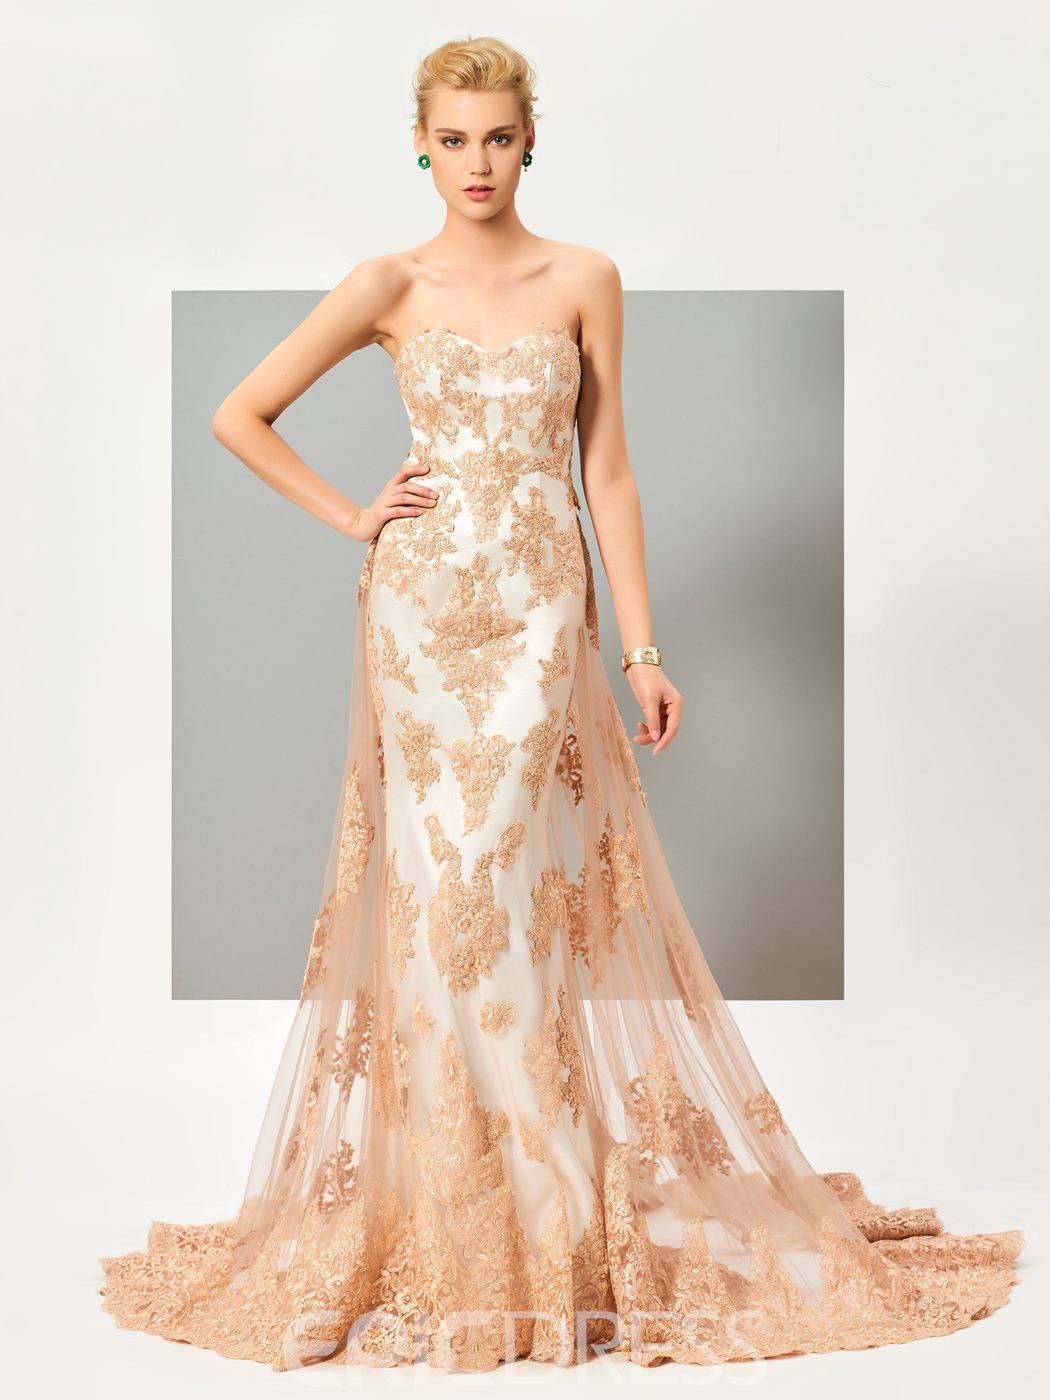 Ericdress Fabulous Strapless Lace Applique Mermaid Evening Dress With Court Train